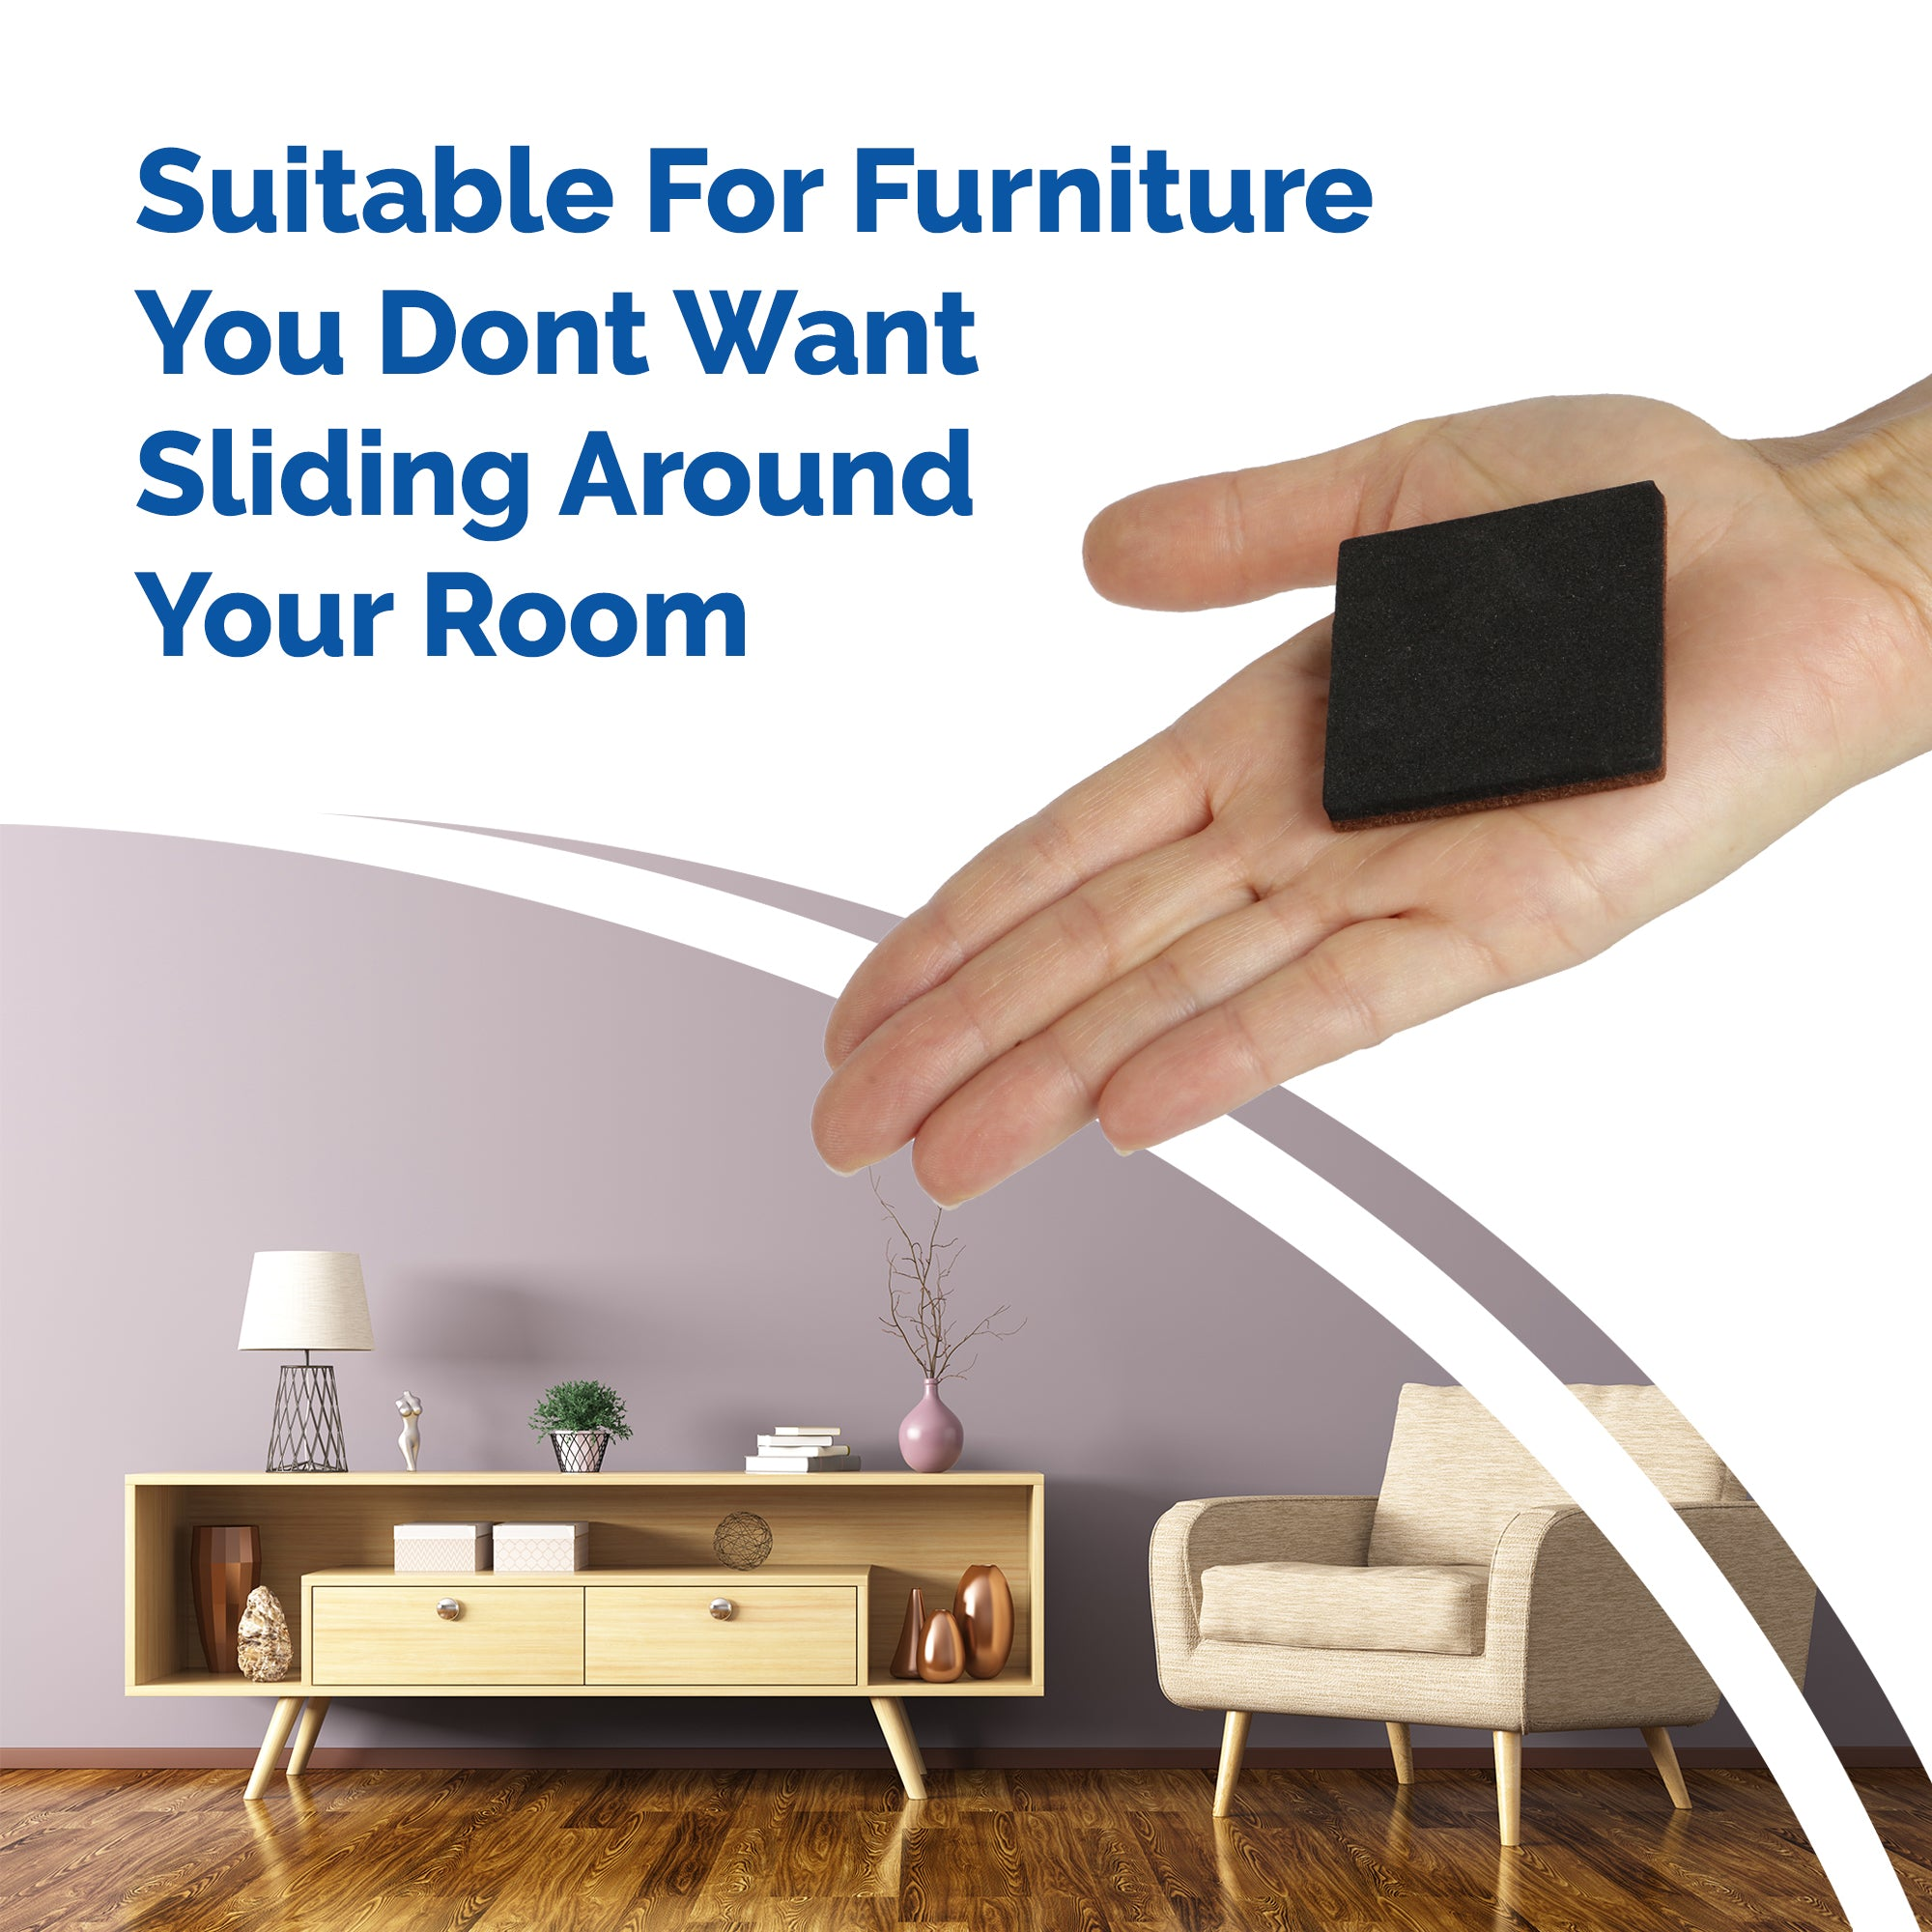 How To Stop Your Furniture From Sliding Around Your Room With Non-Slip Pads